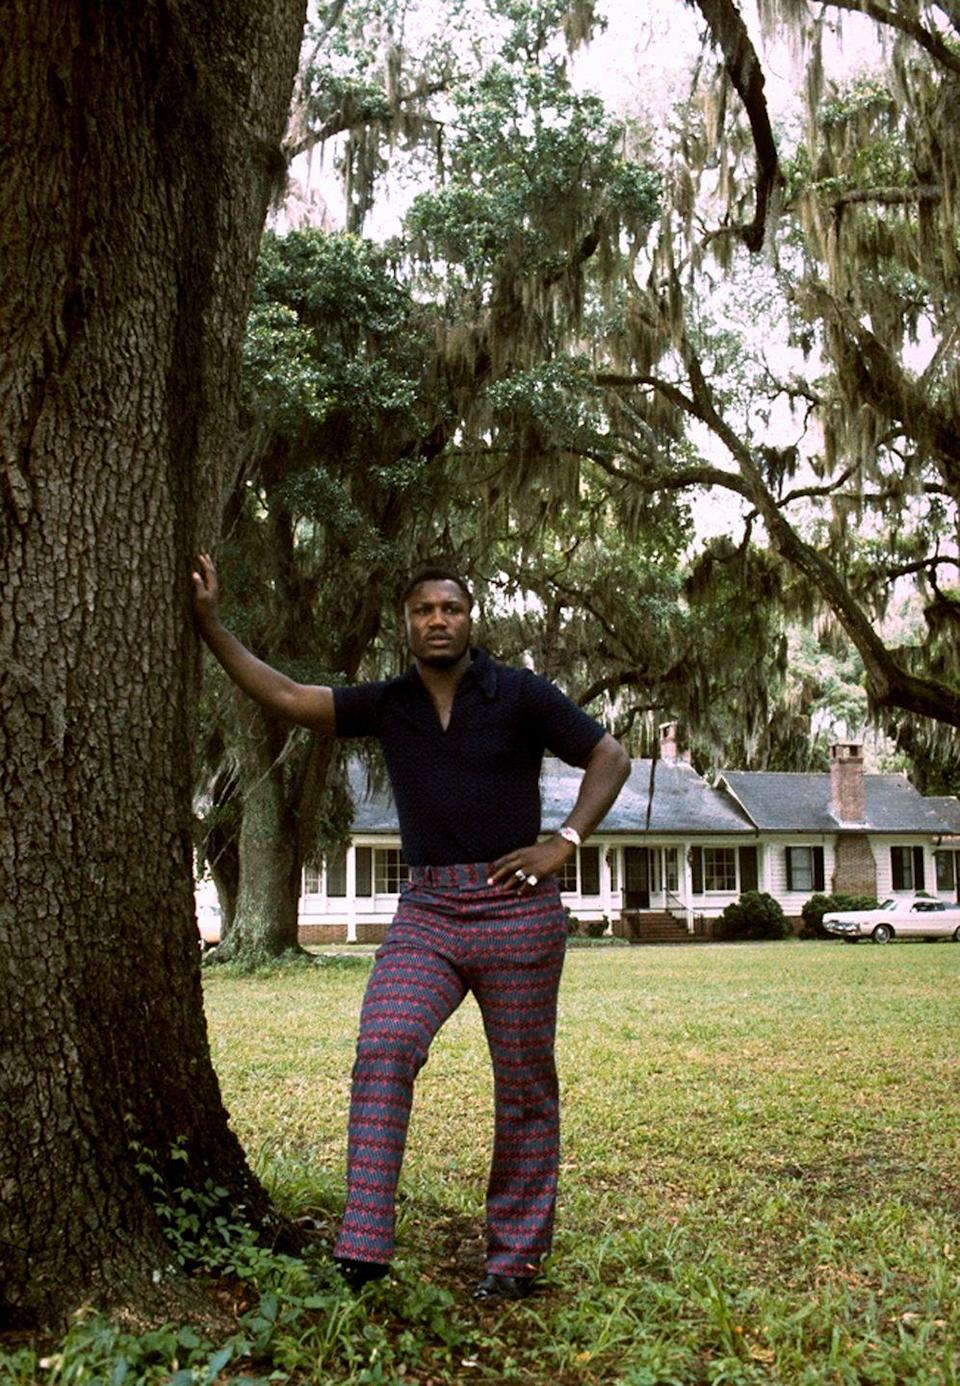 <p>Professional boxer Joe Frazier poses on the front lawn of his home in Yemassee, South Carolina in 1972.</p>